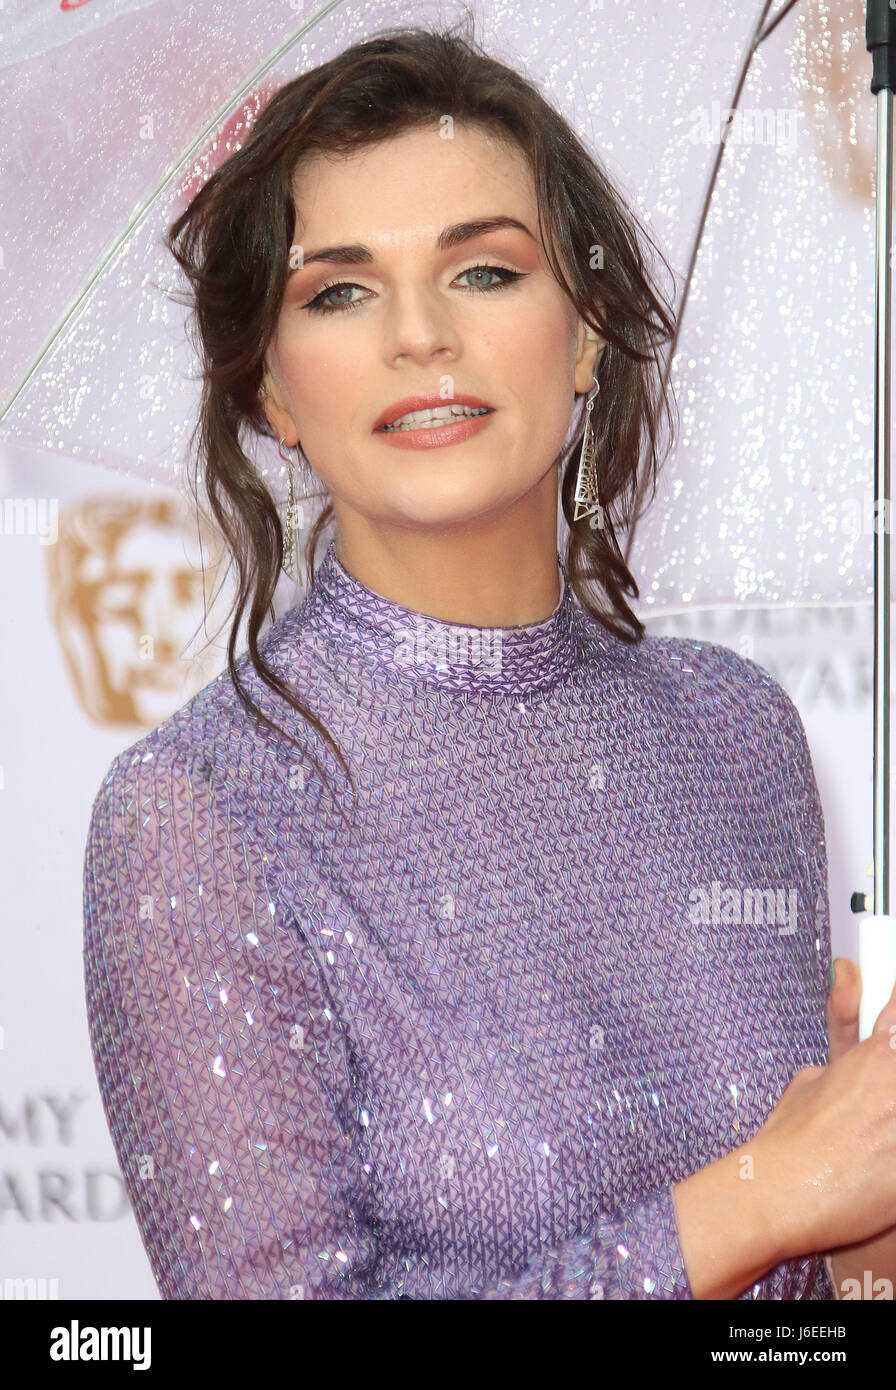 14. Mai 2017 - Aisling Bea Teilnahme an Virgin TV BAFTA TV Awards 2017 in der Royal Festival Hall in London, England, Stockbild